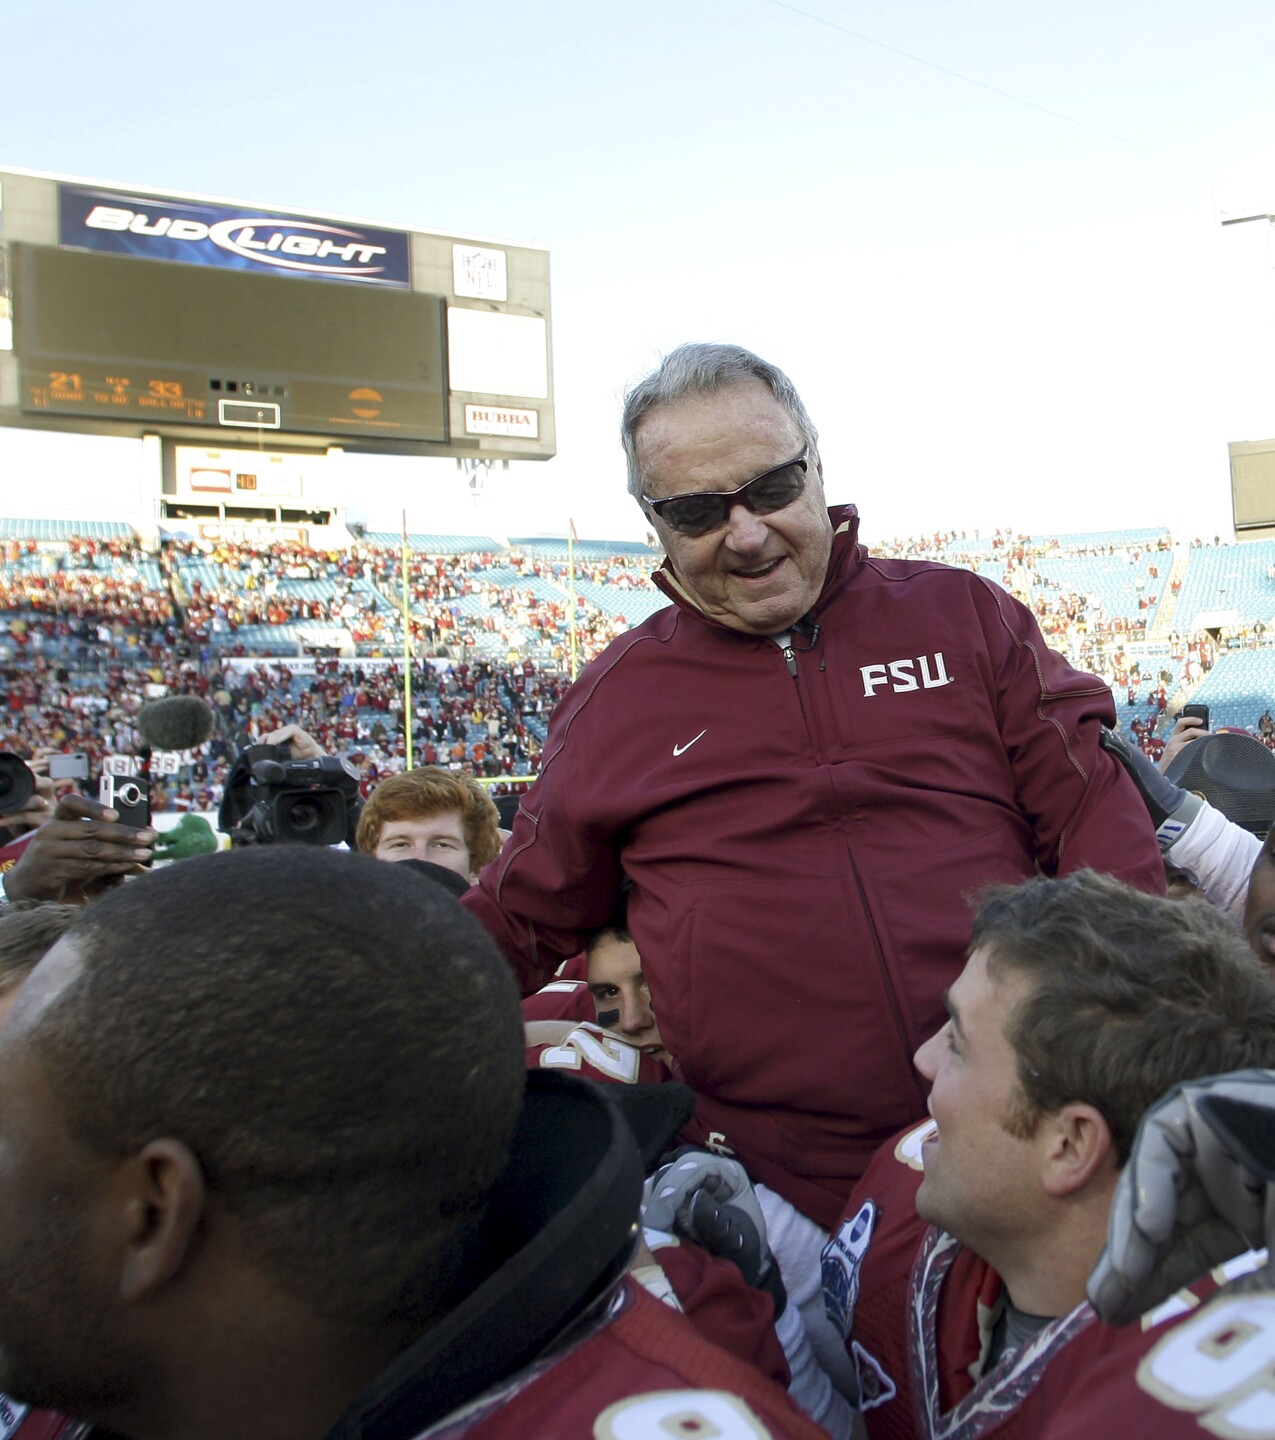 Florida State Seminoles head coach Bobby Bowden carried off field after 2010 Gator Bowl victory